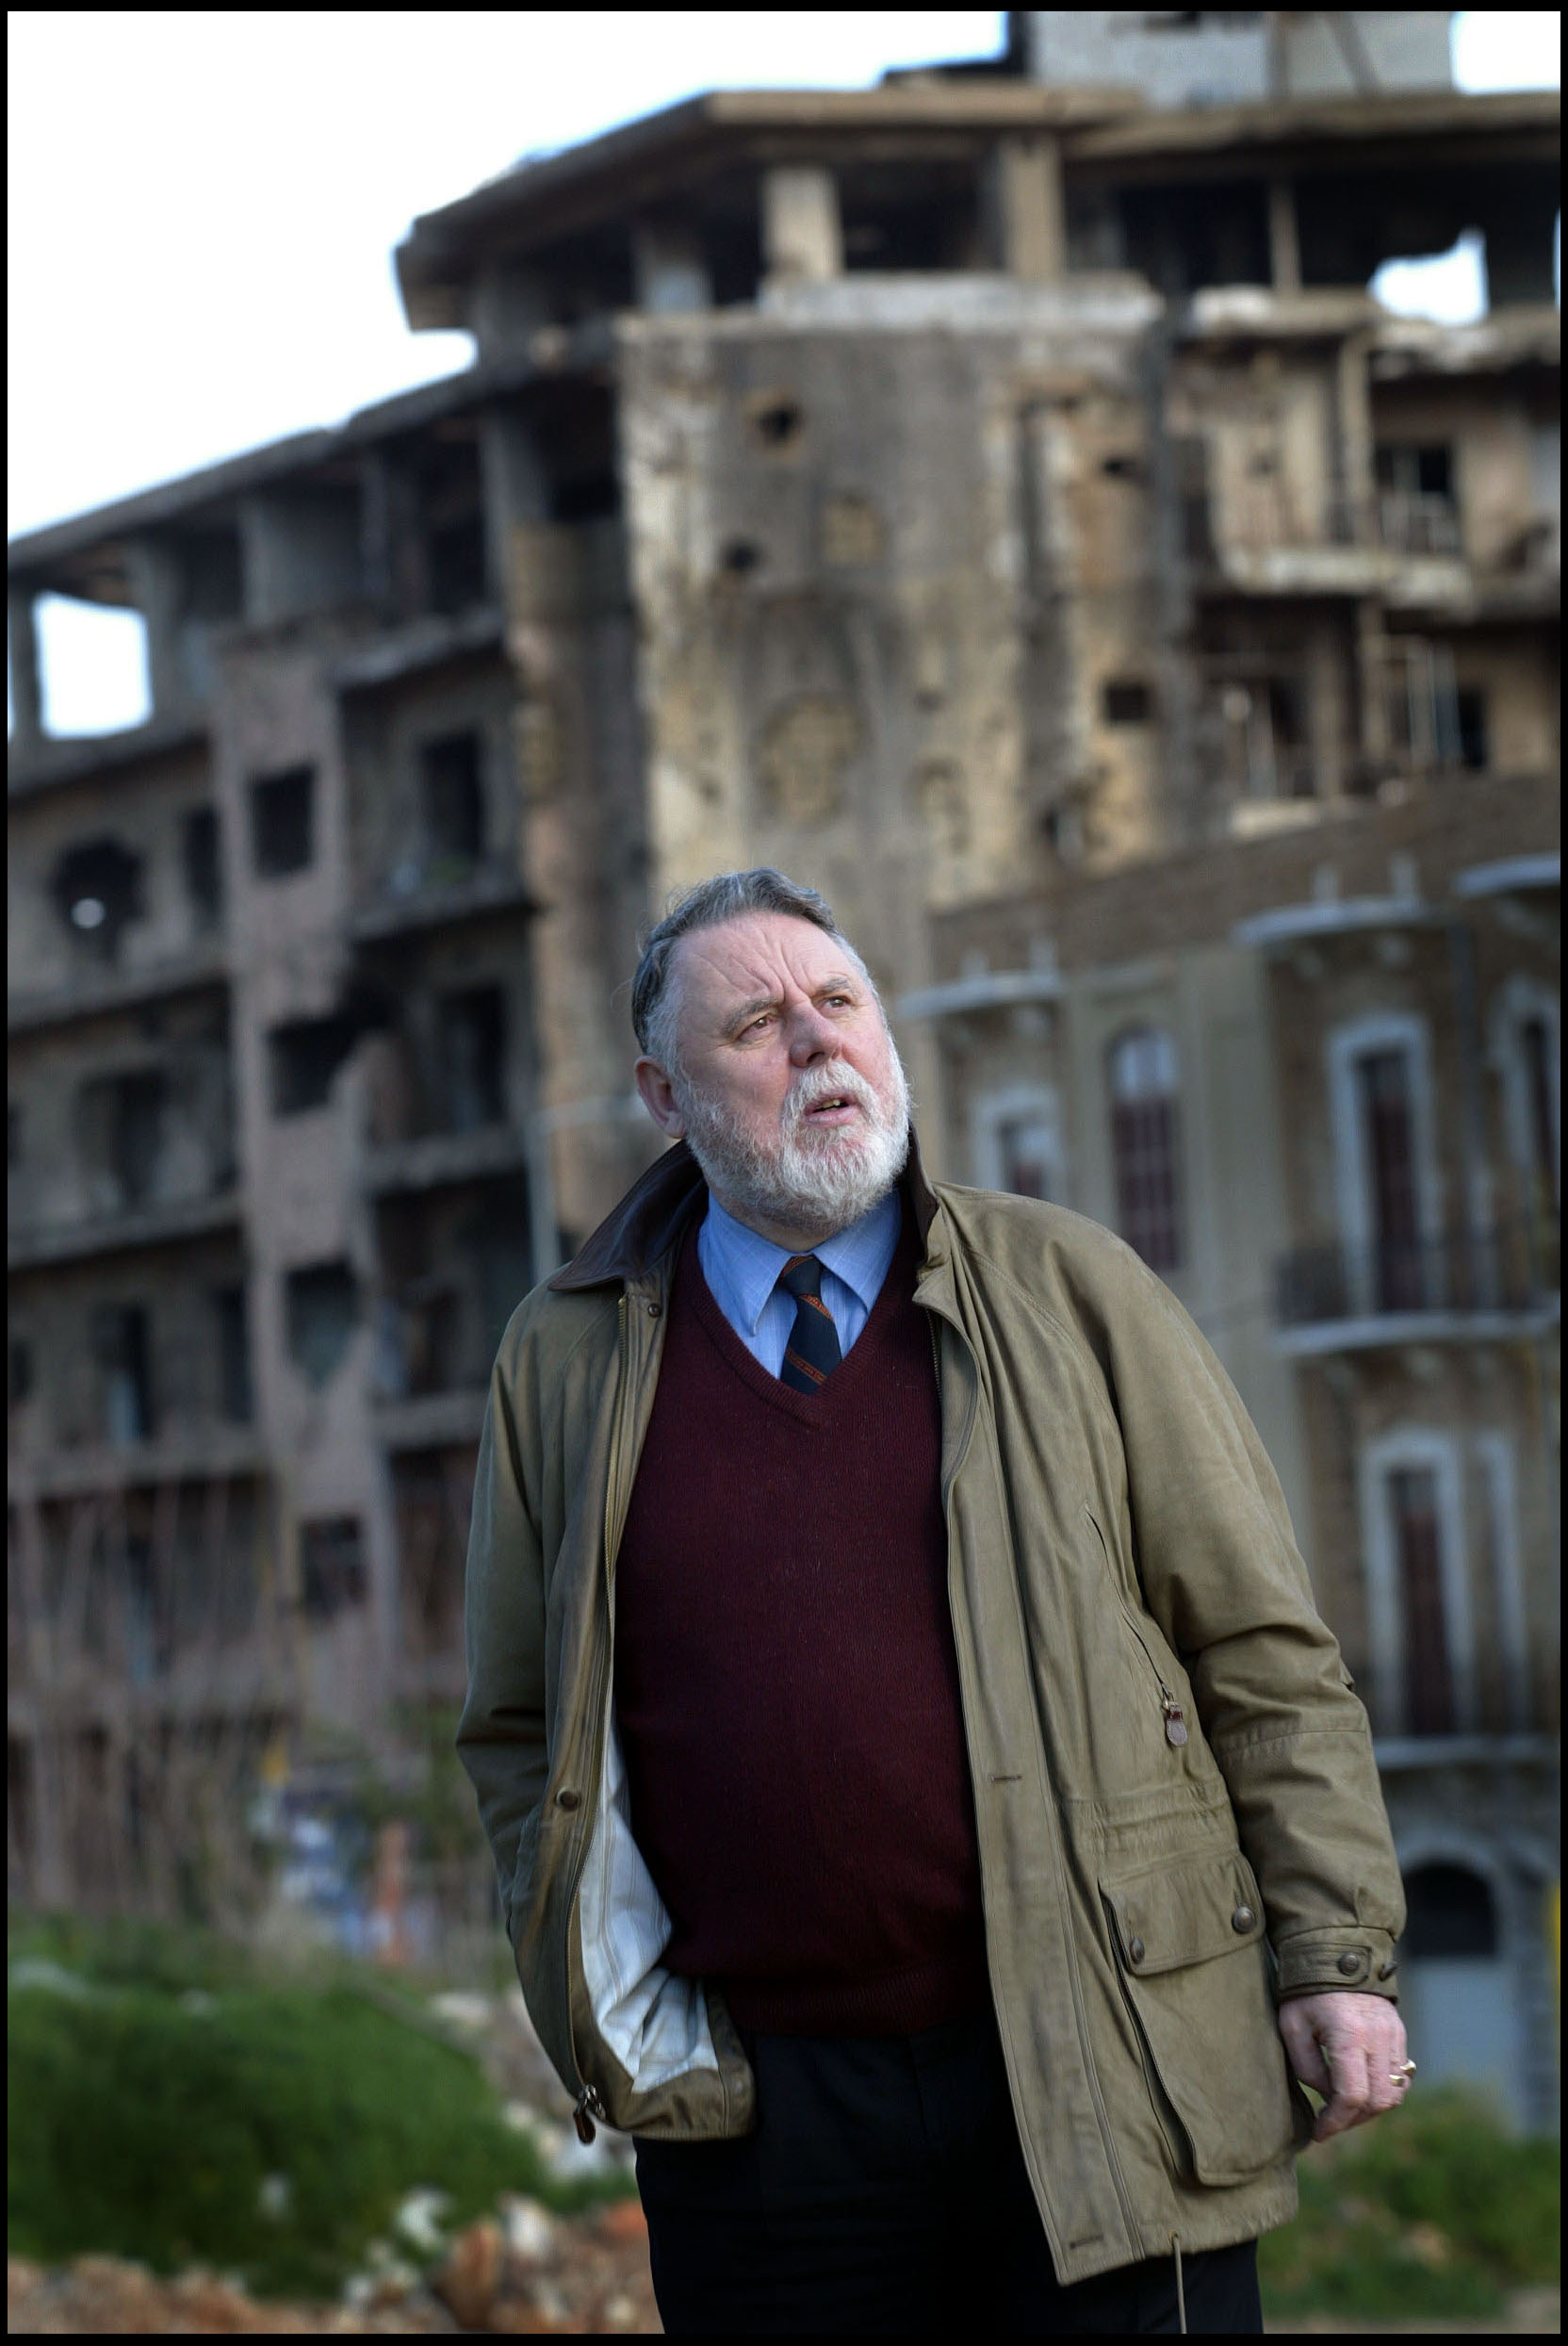 Terry Waite returns to Beirut for the first time, 13 years after being released from his five year kidnap ordeal.